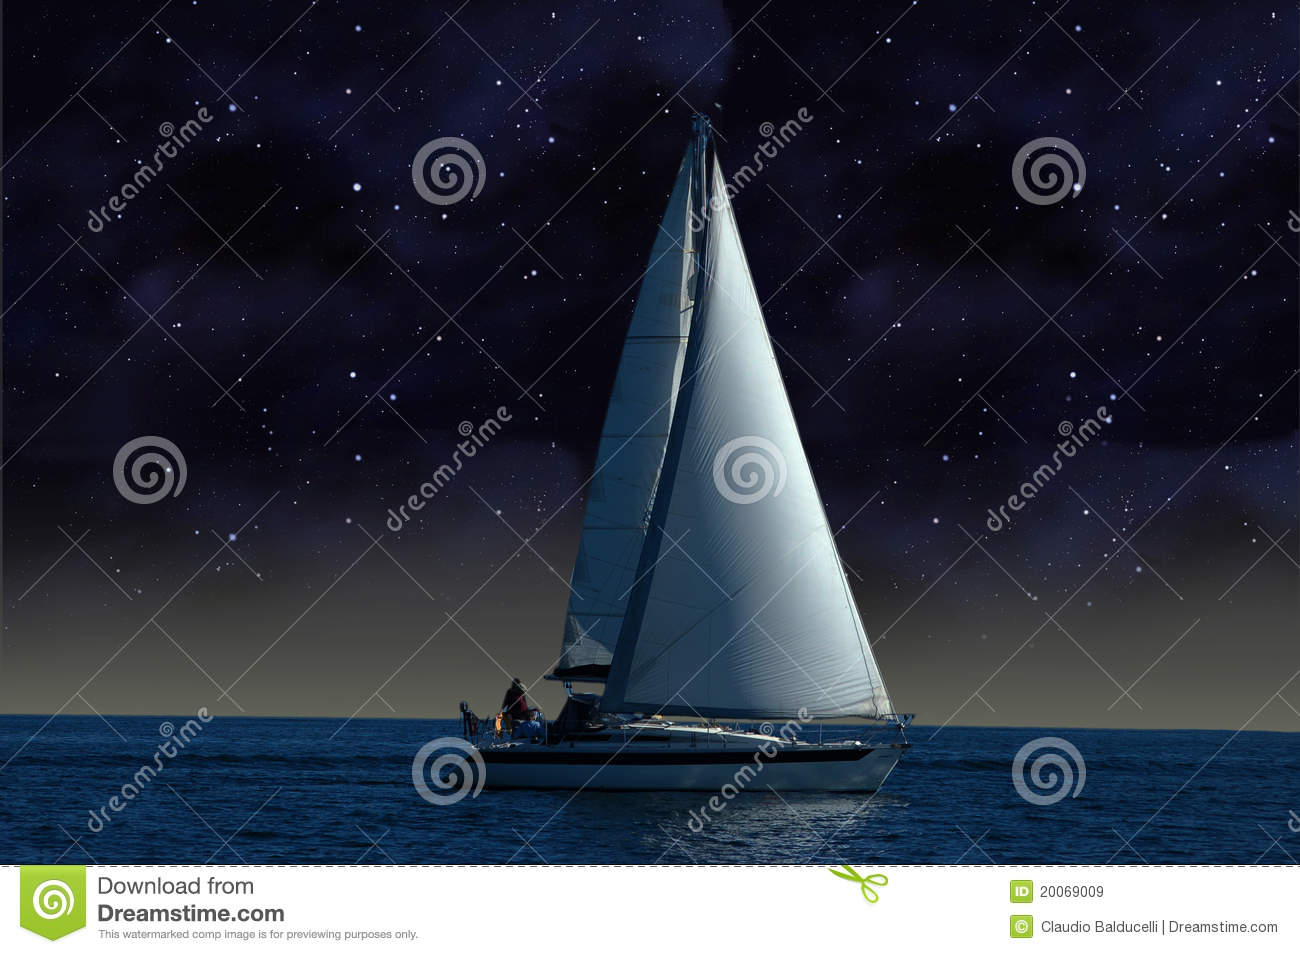 A sailboat in the starry night